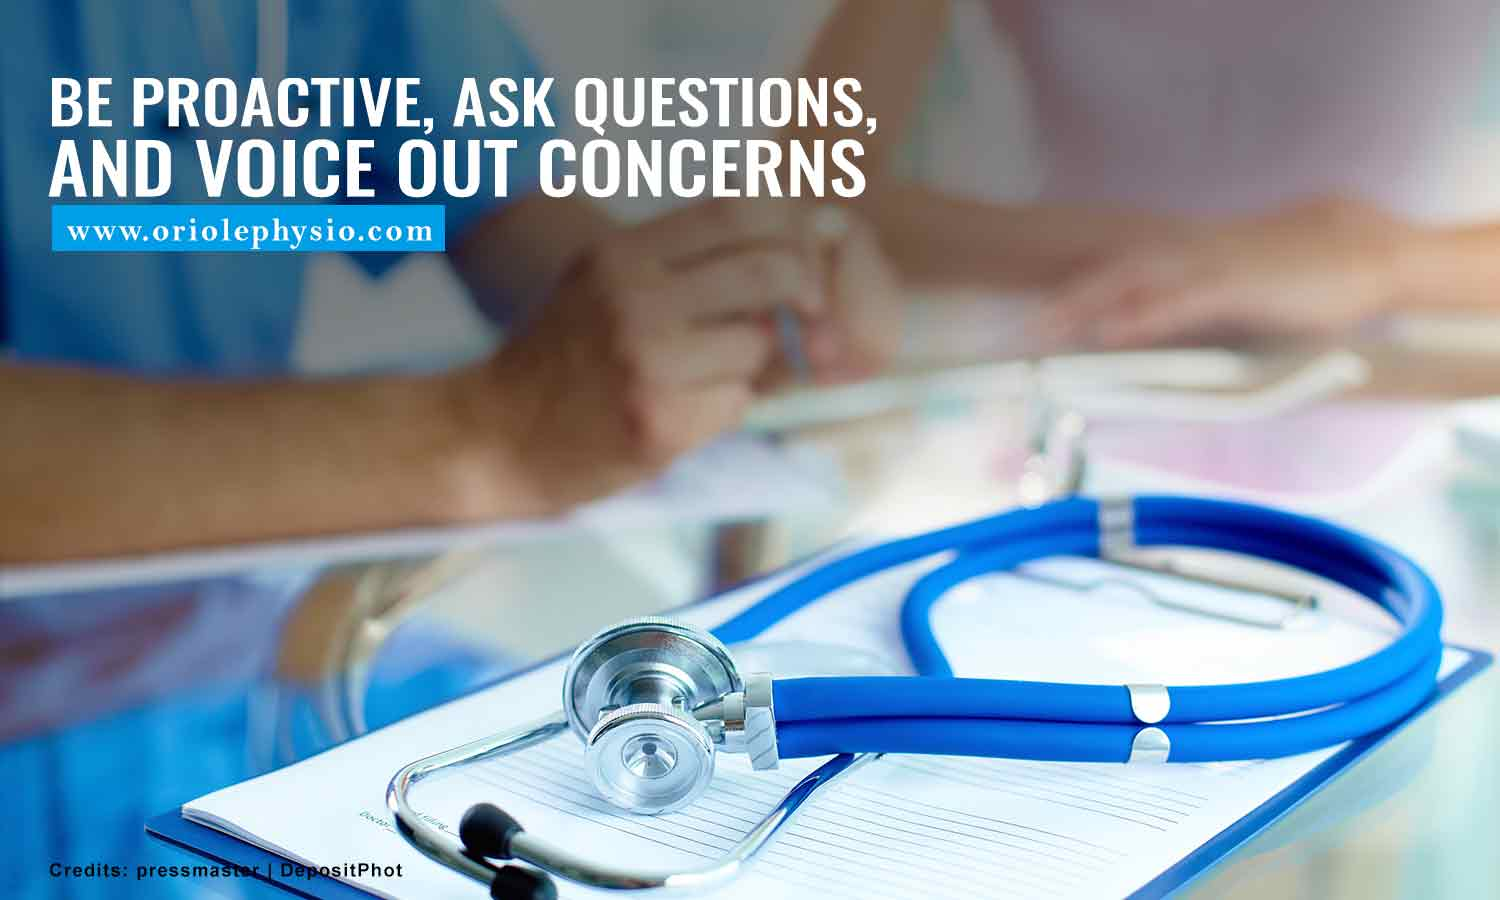 Be proactive, ask questions, and voice out concerns